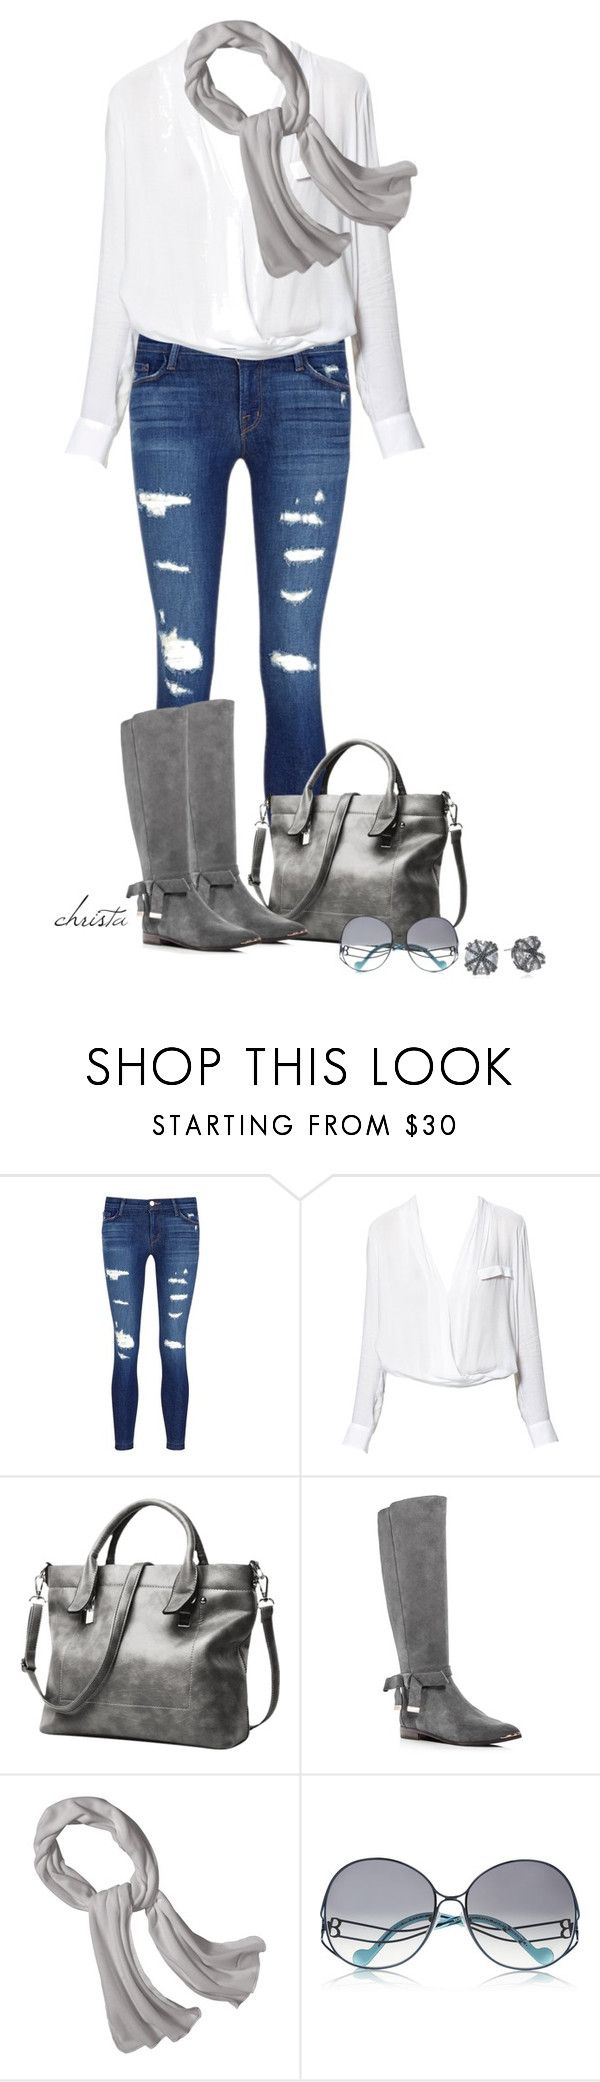 """Simple Grey and White"" by christa72 ❤ liked on Polyvore featuring J Brand, Zara, Ted Baker, Patagonia, Balenciaga and ABS by Allen Schwartz"